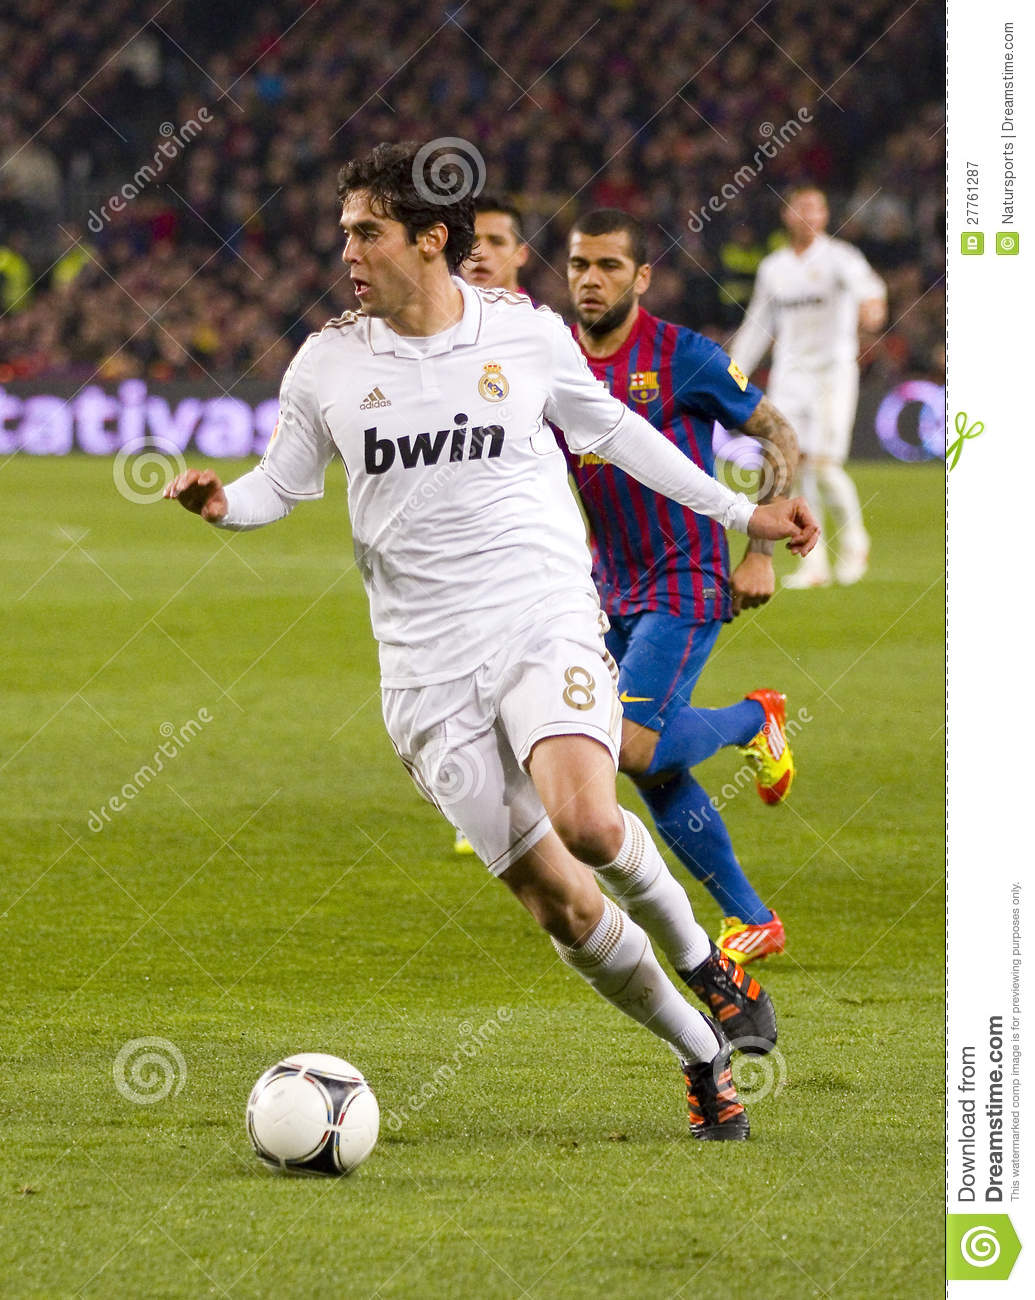 Ricardo Kaka de Real Madrid